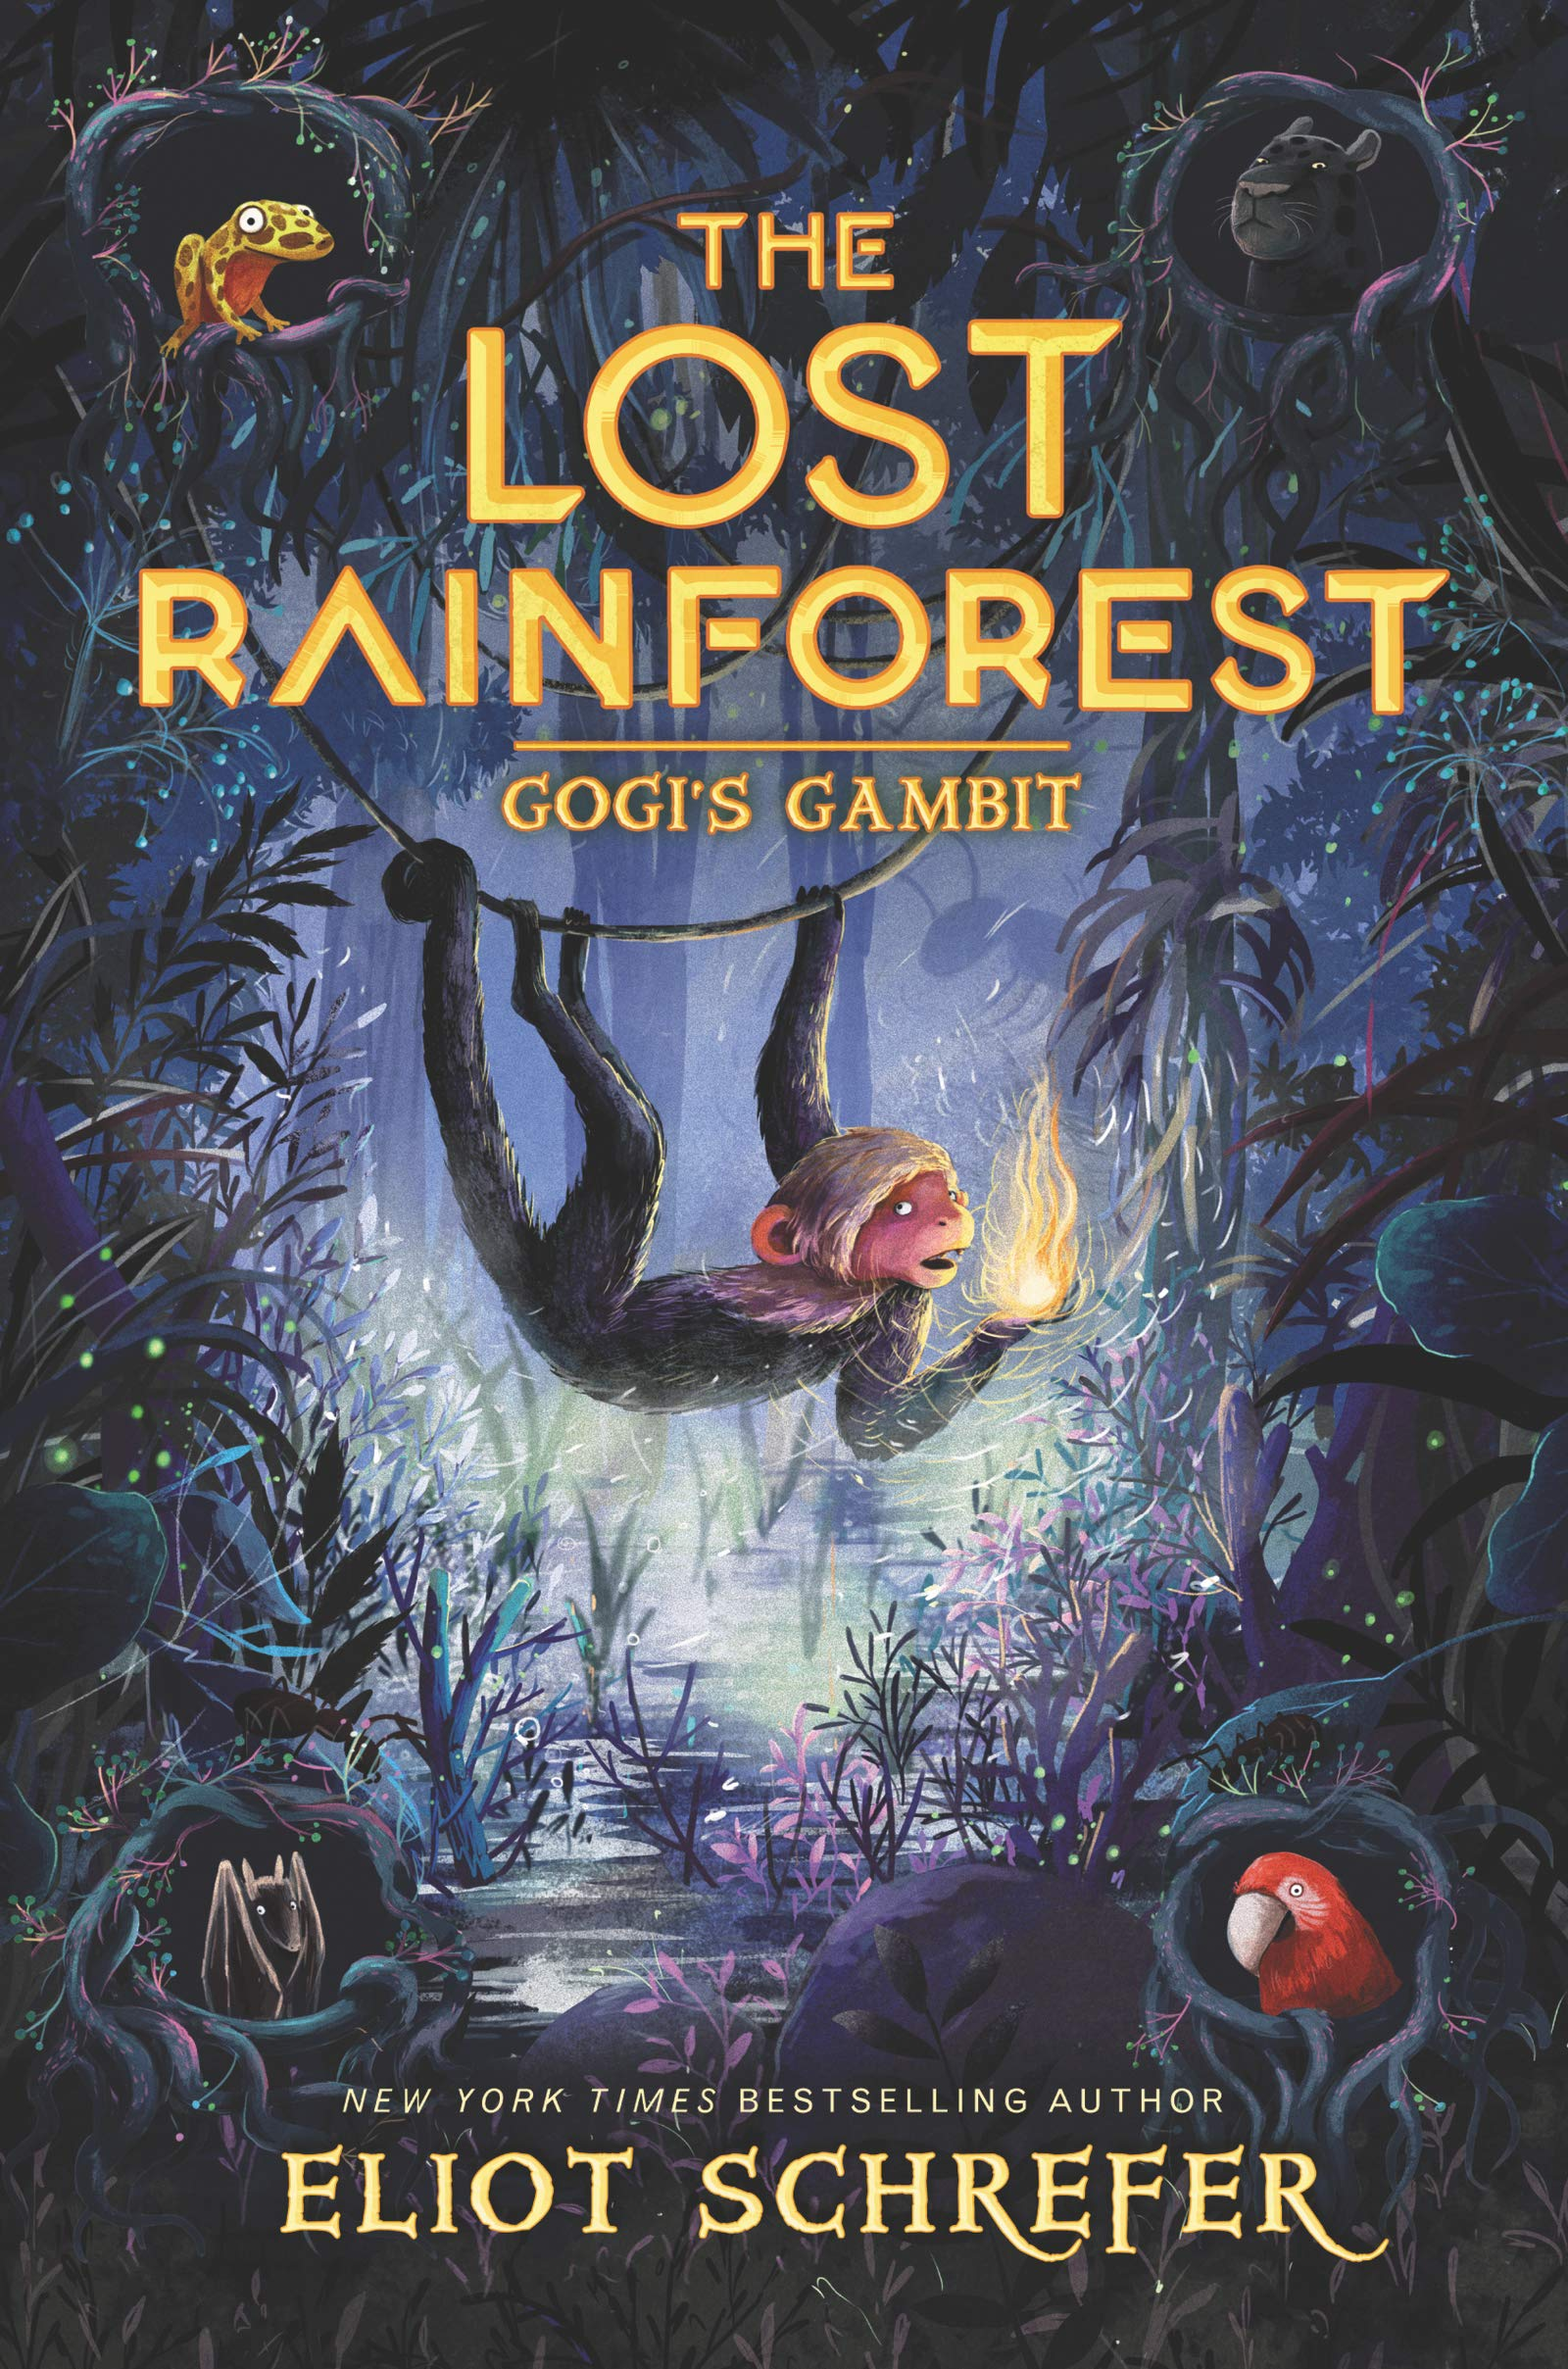 The Lost Rainforest #2: Gogi's Gambit (English Edition)